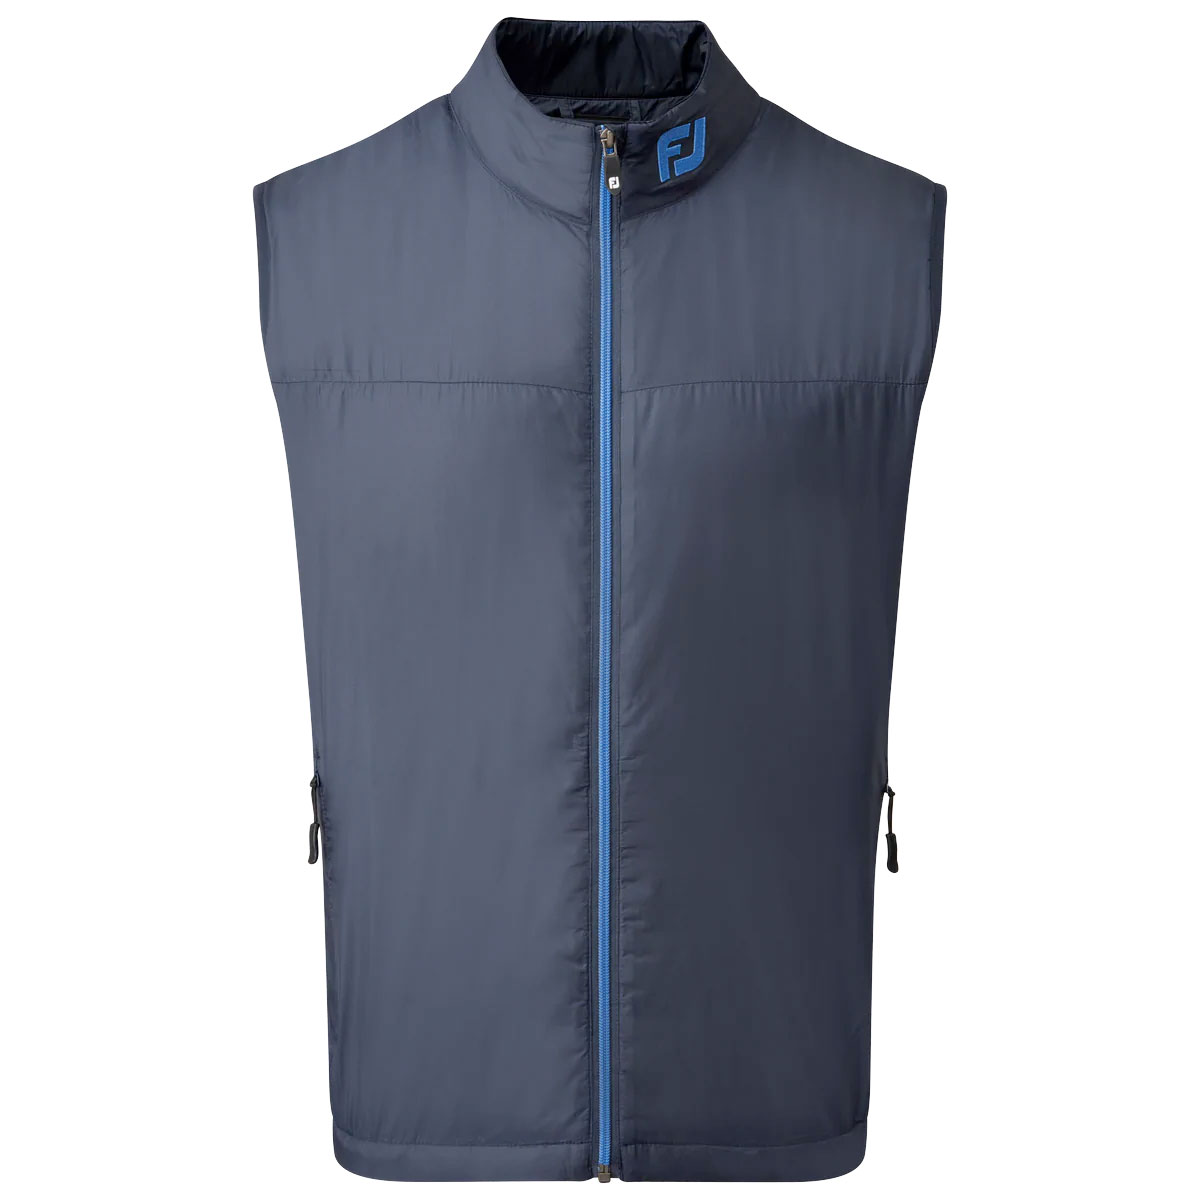 FootJoy Lightweight Thermal Insulated Vest Gilet  - Navy/Lagoon